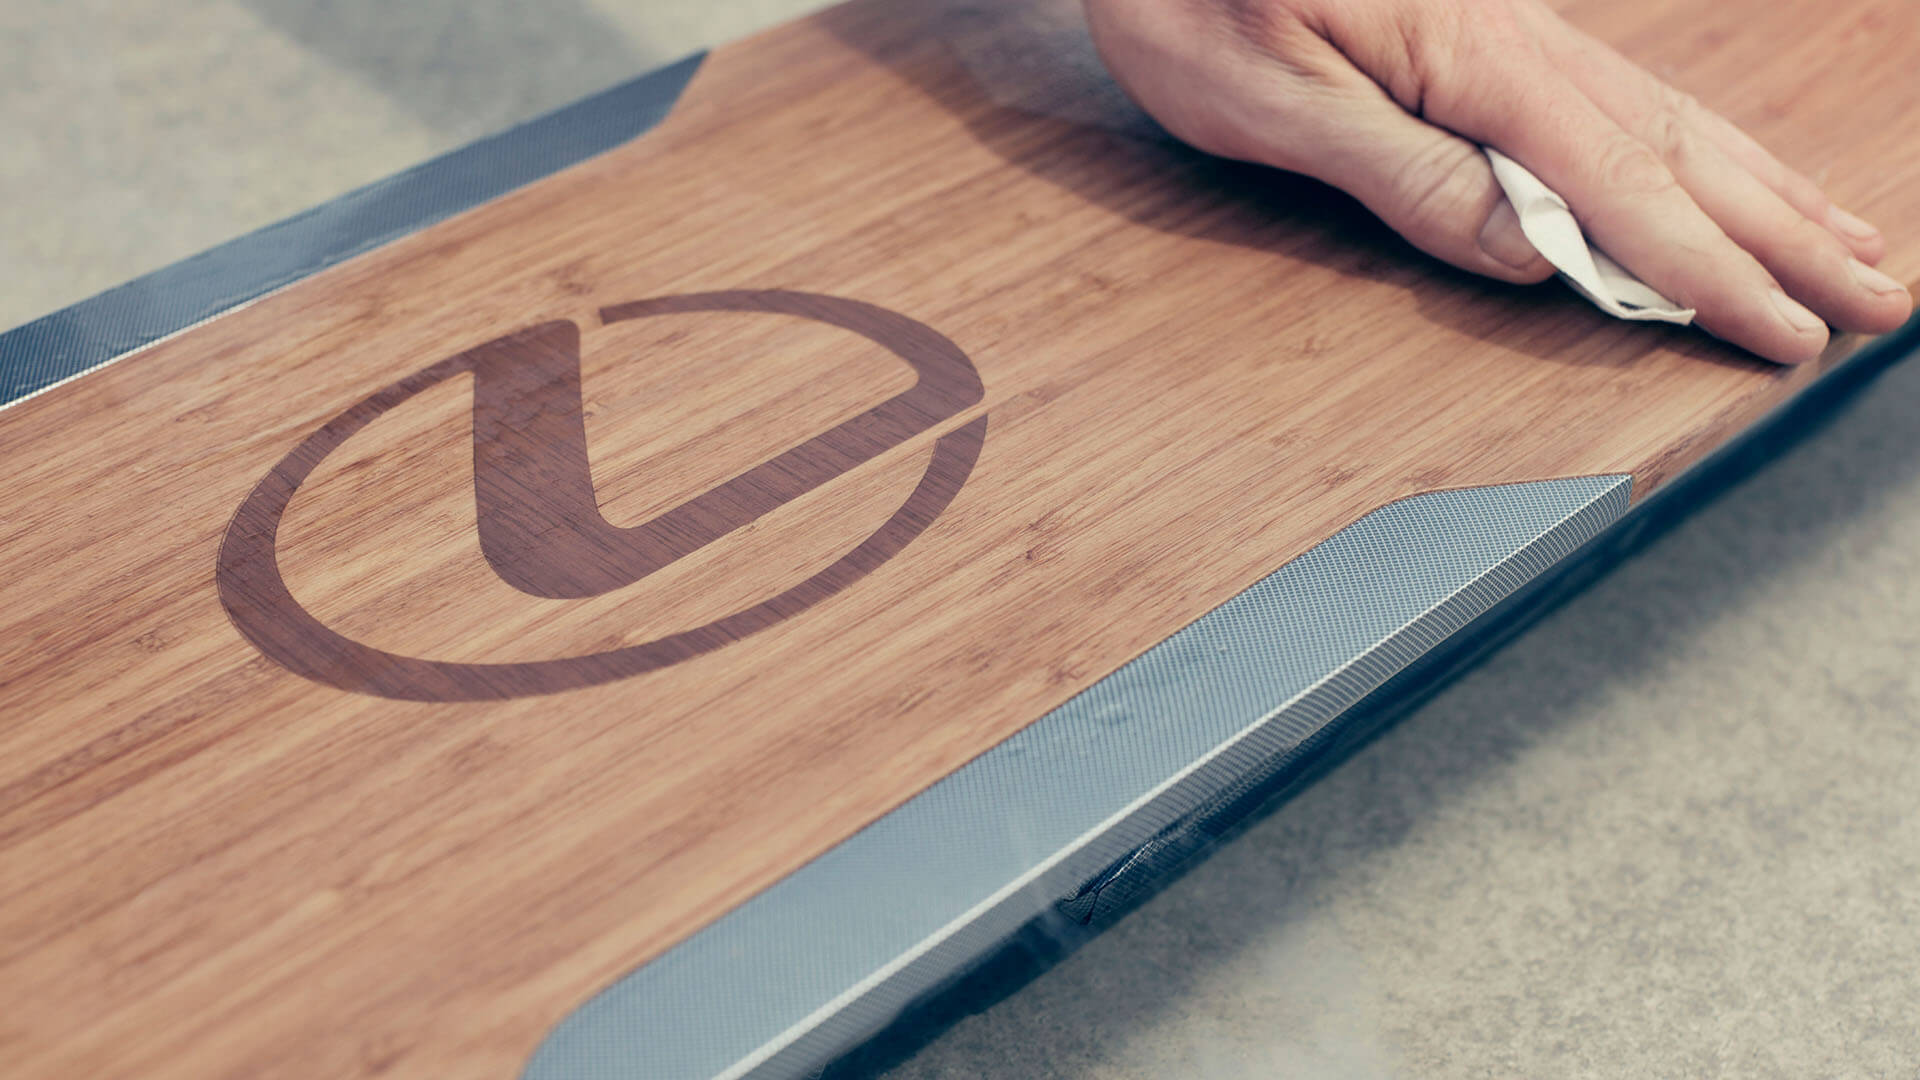 Someone cleaning a Lexus hoverboard